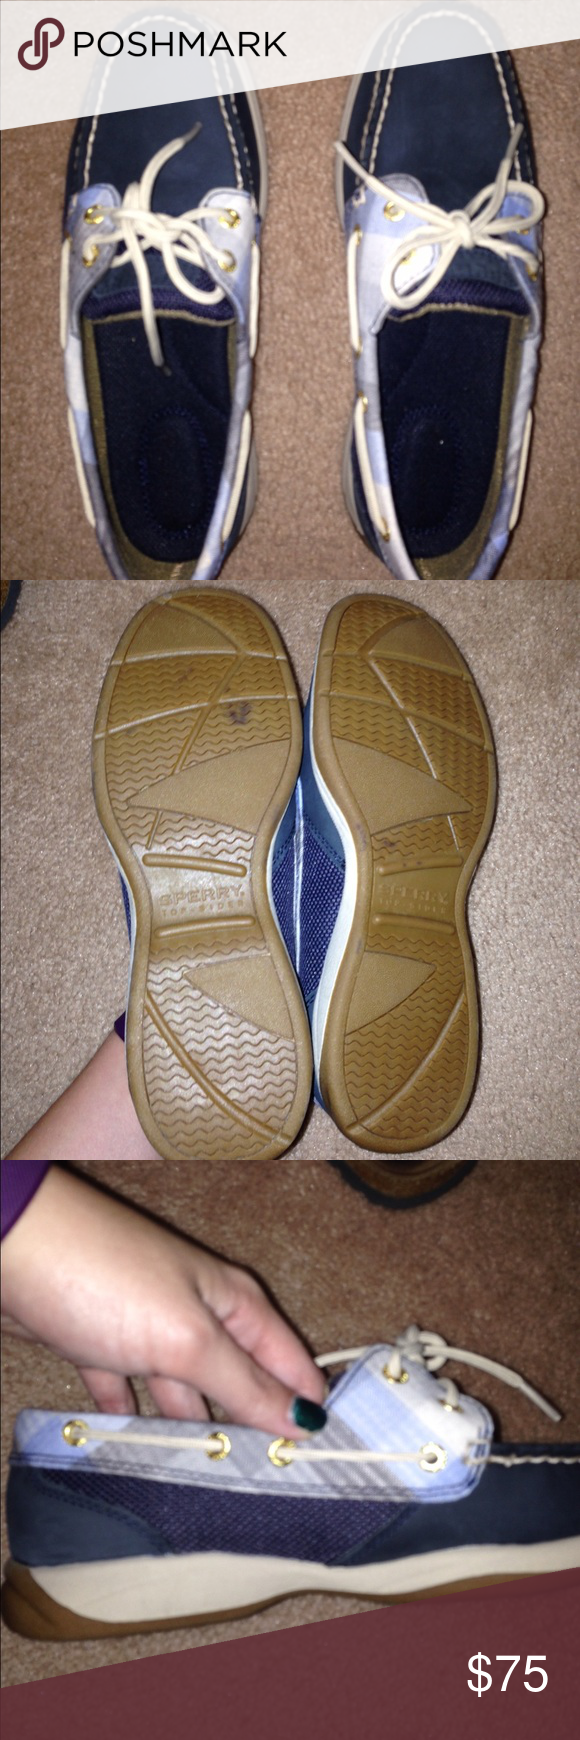 FLASH SALE Sperry intrepid plaid boat shoe Brand new never worn! Blemish on the bottom of the shoe was present when purchased. I believe these run slightly large. Open to reasonable offers made using the offer button. NO TRADES!! Sperry Top-Sider Shoes Flats & Loafers